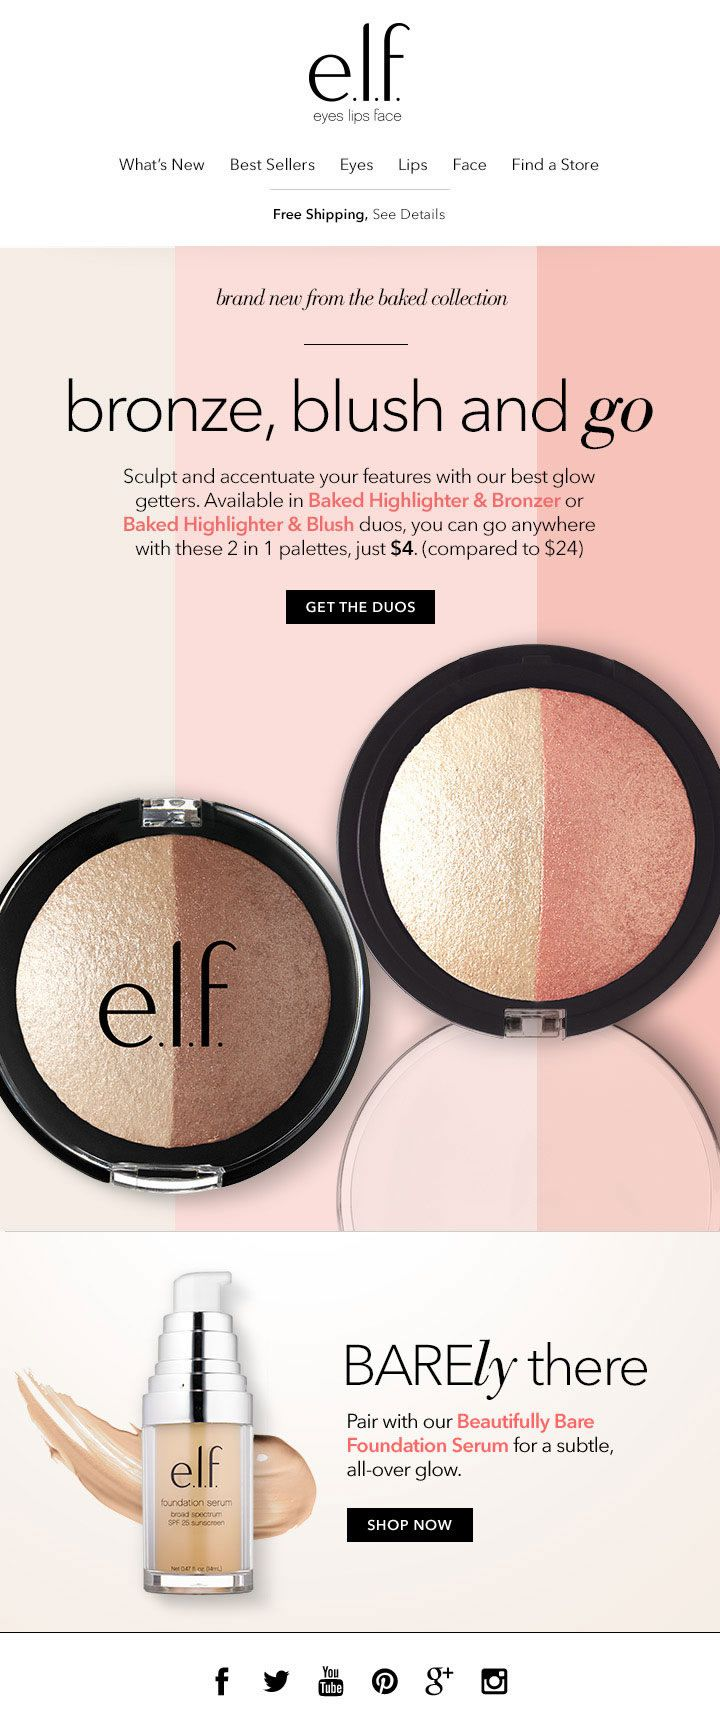 Bronze, blush and go with our NEW Baked Highlighter & Bronzer and Baked Highlighter & Blush Duo's.  CLIENT: e.l.f. Cosmetics Built by: Mark Nayve | SellUp